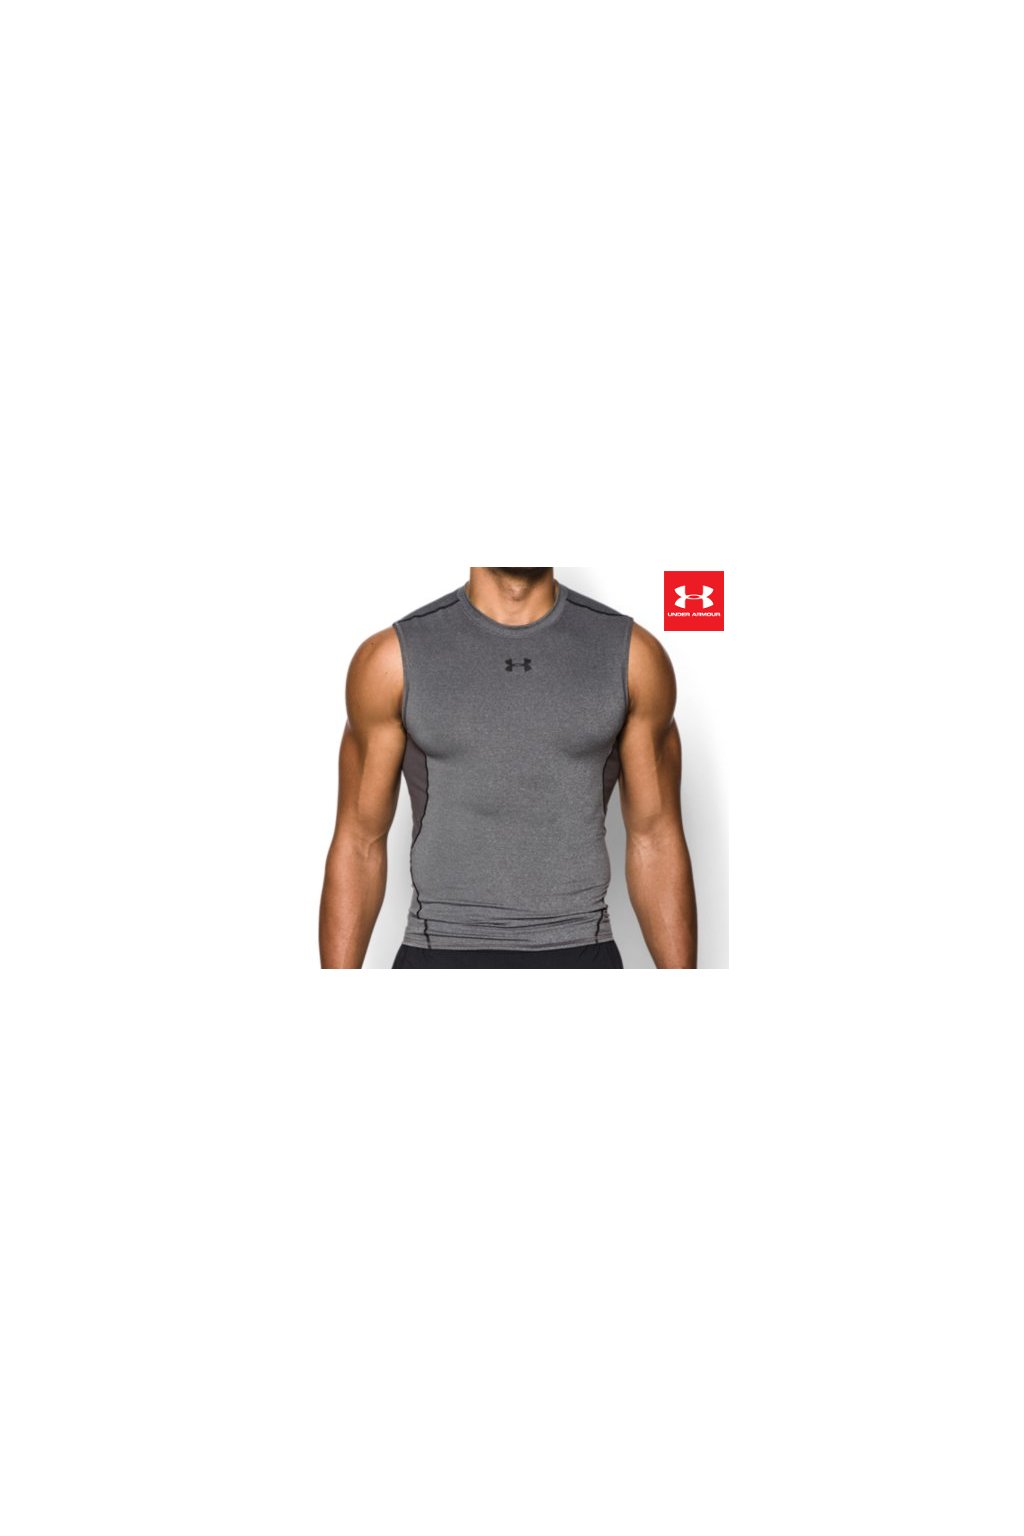 1257469 090 under armour compression shirt (11)